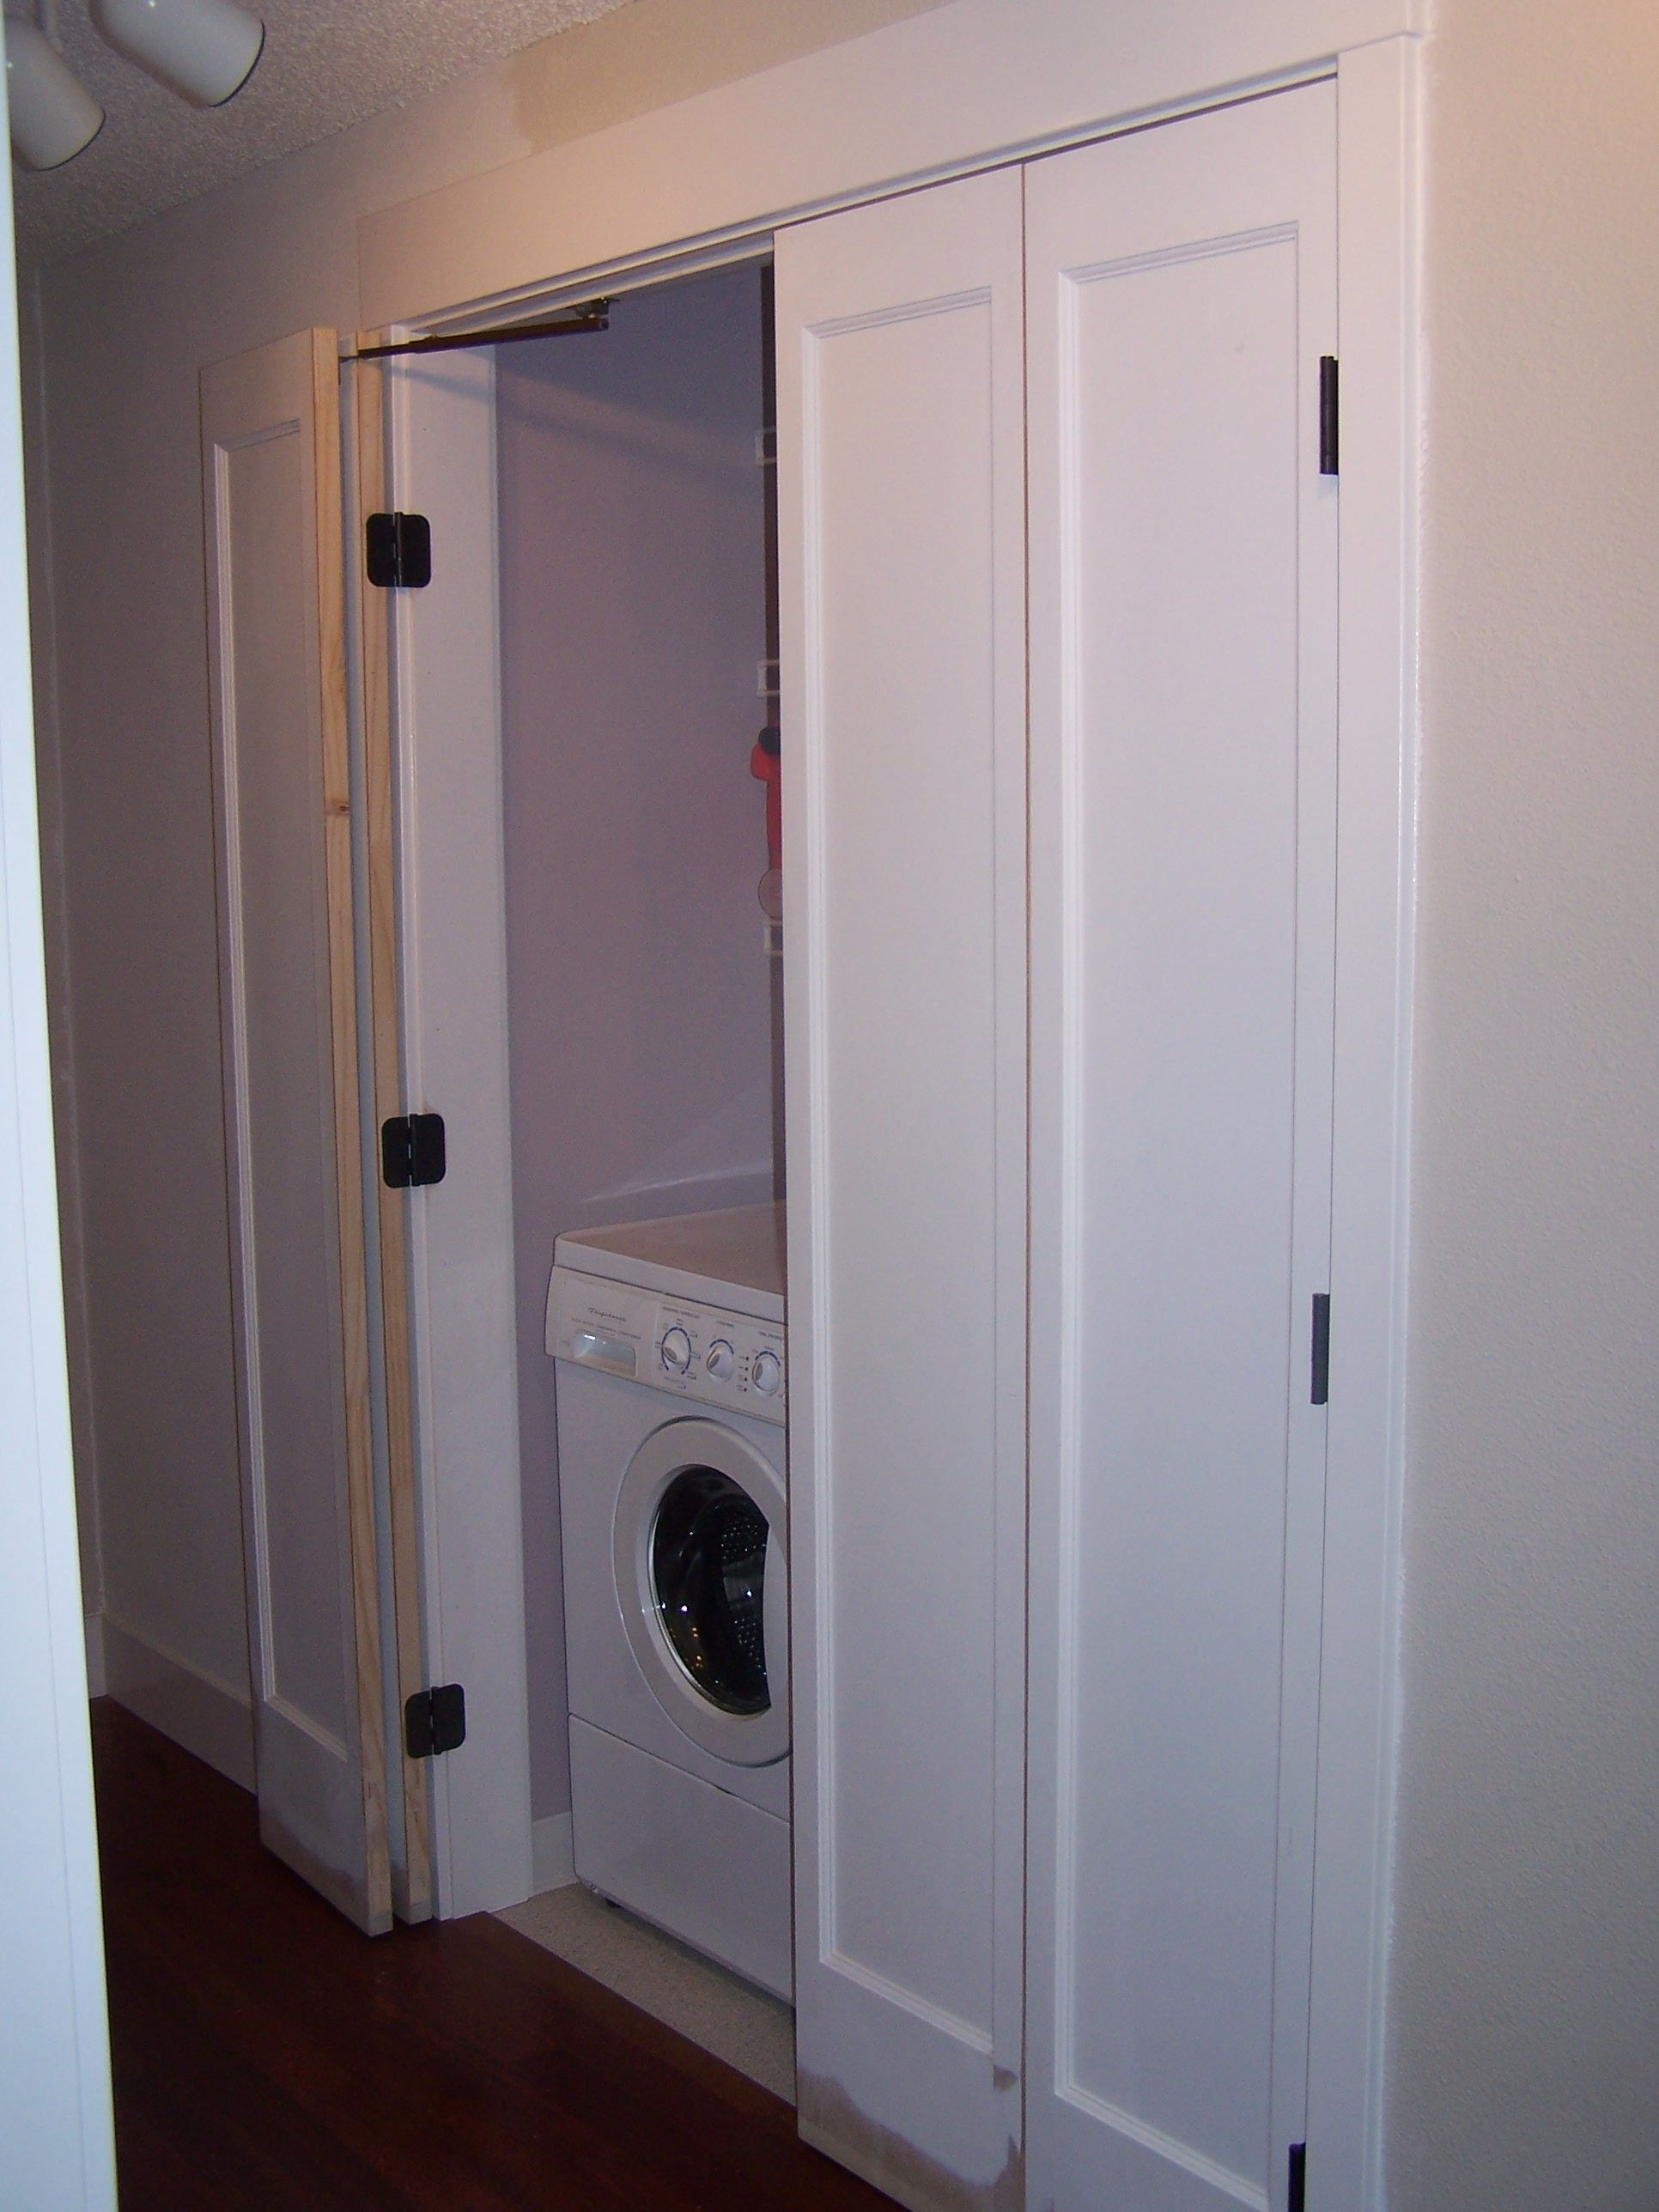 Laundry bifold doors Closet Door HardwareCloset